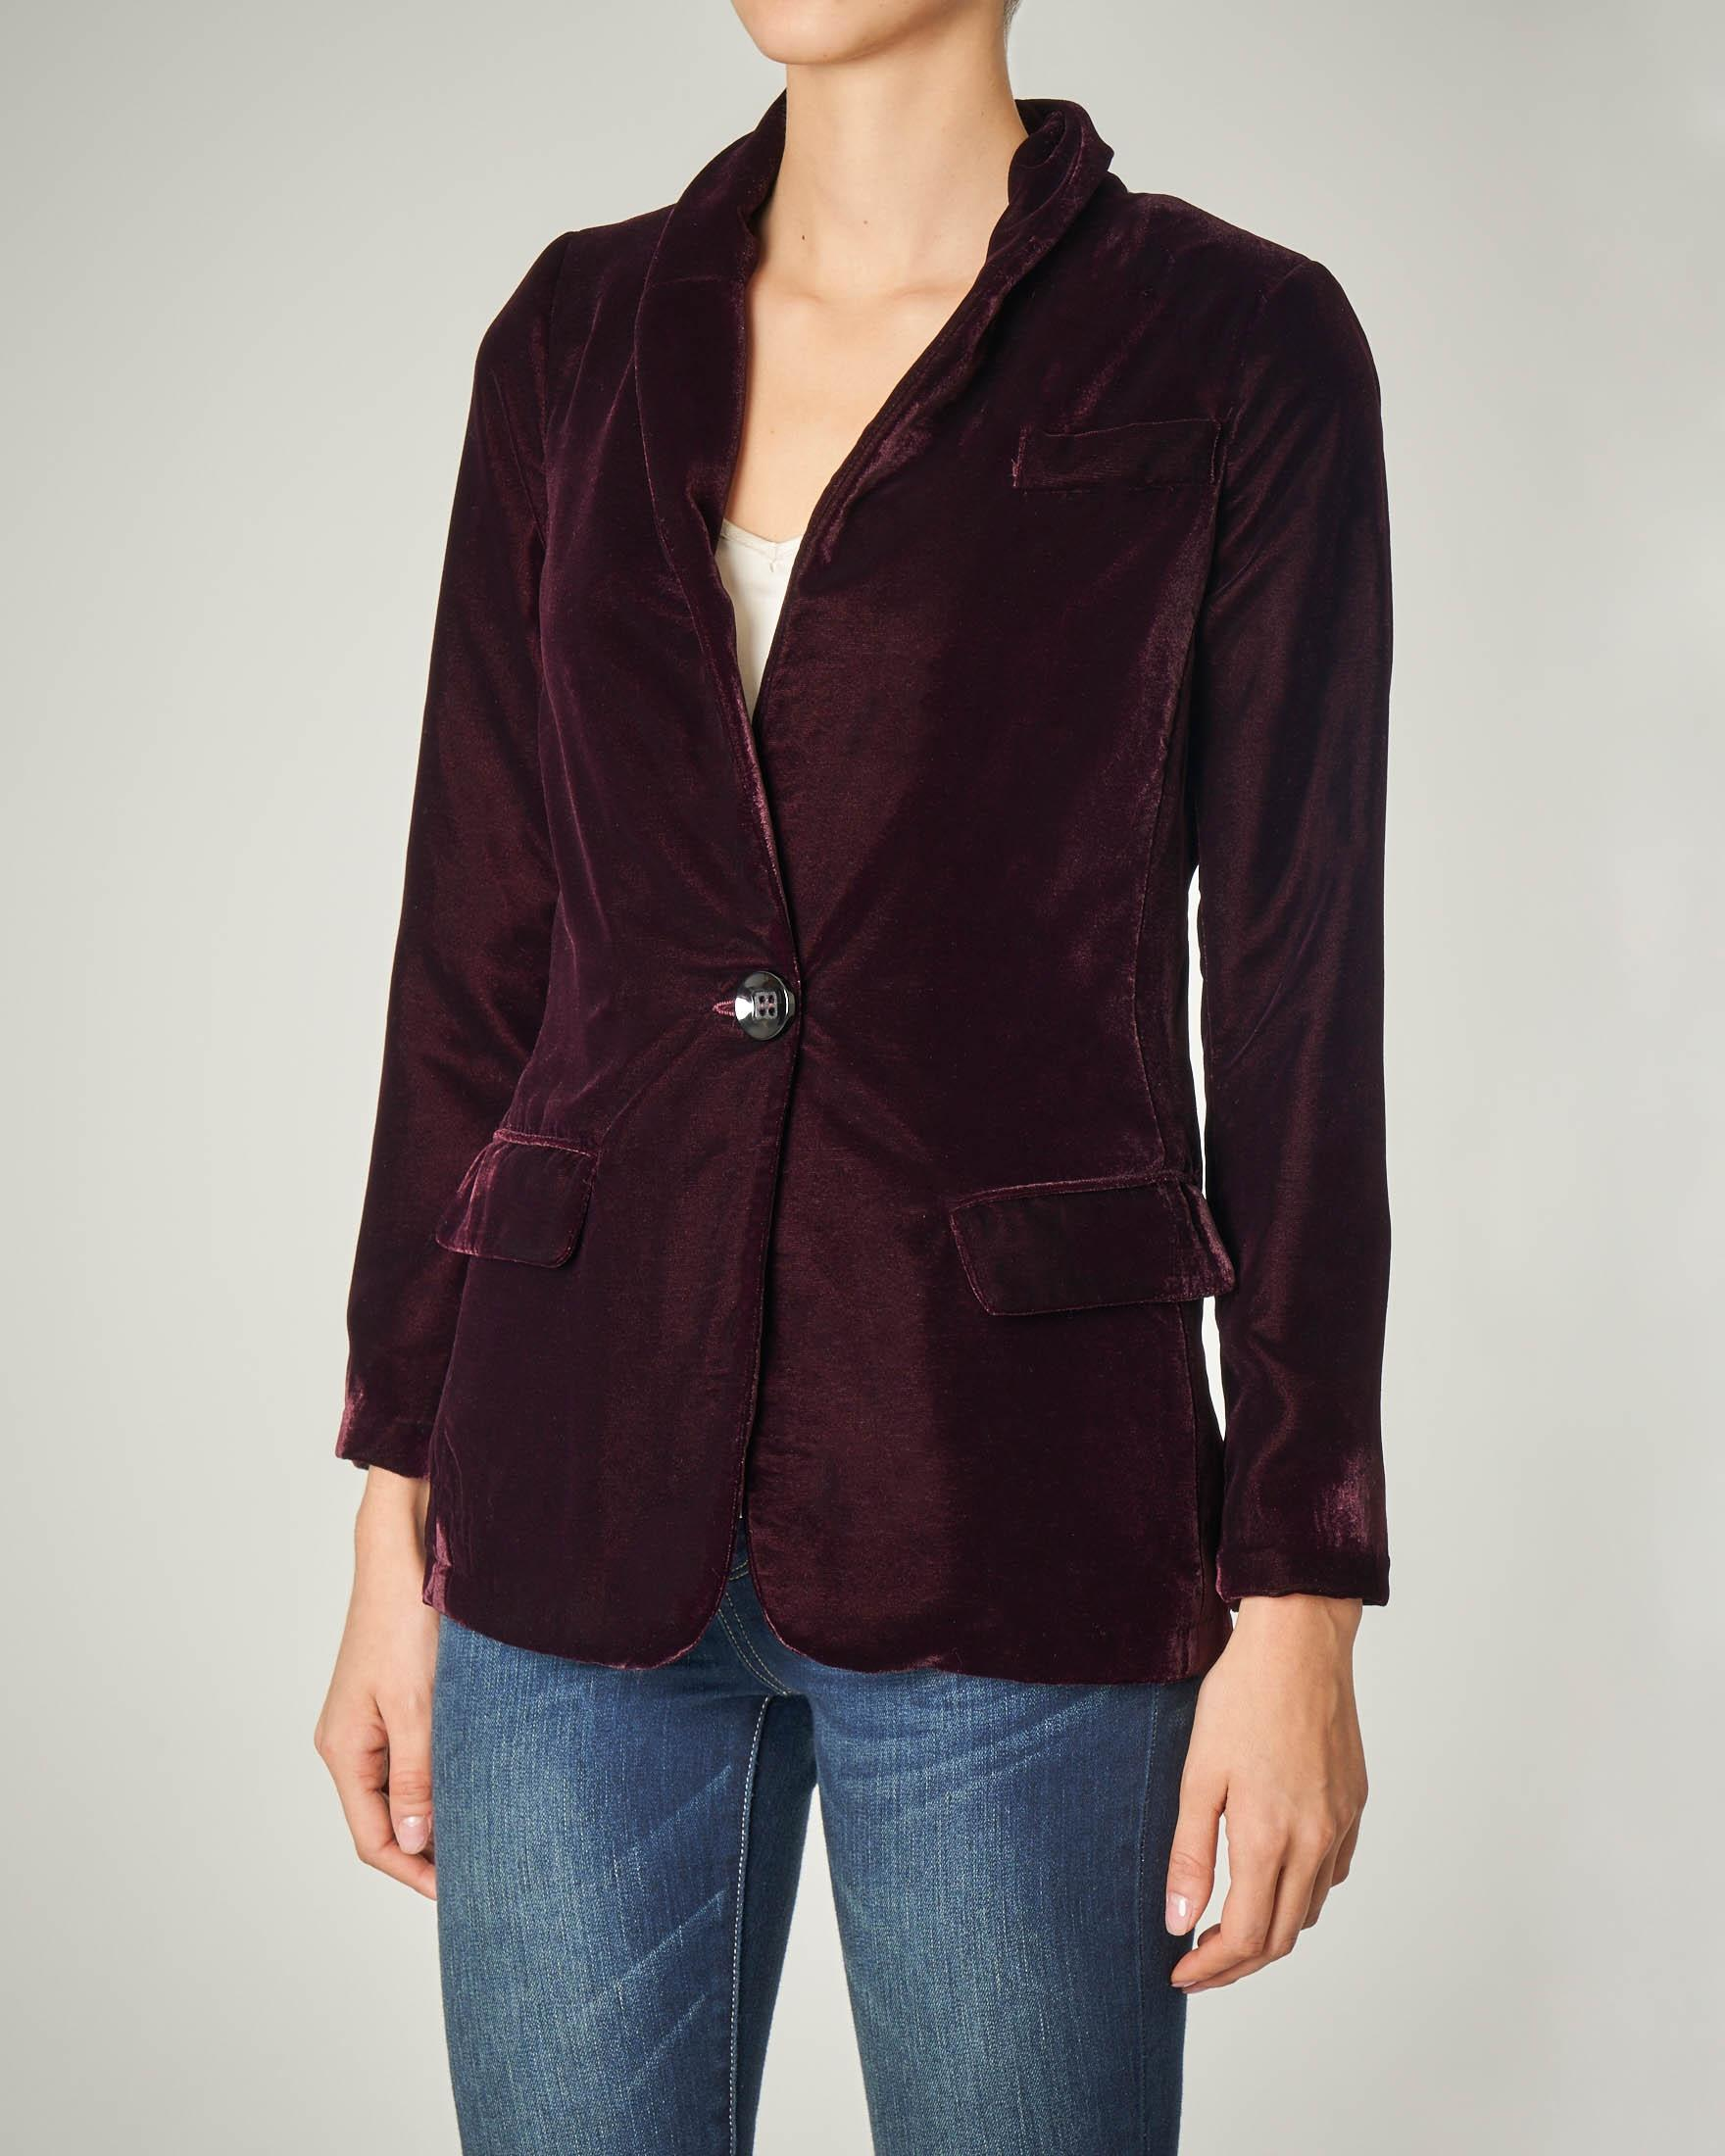 Blazer in velluto bordeaux